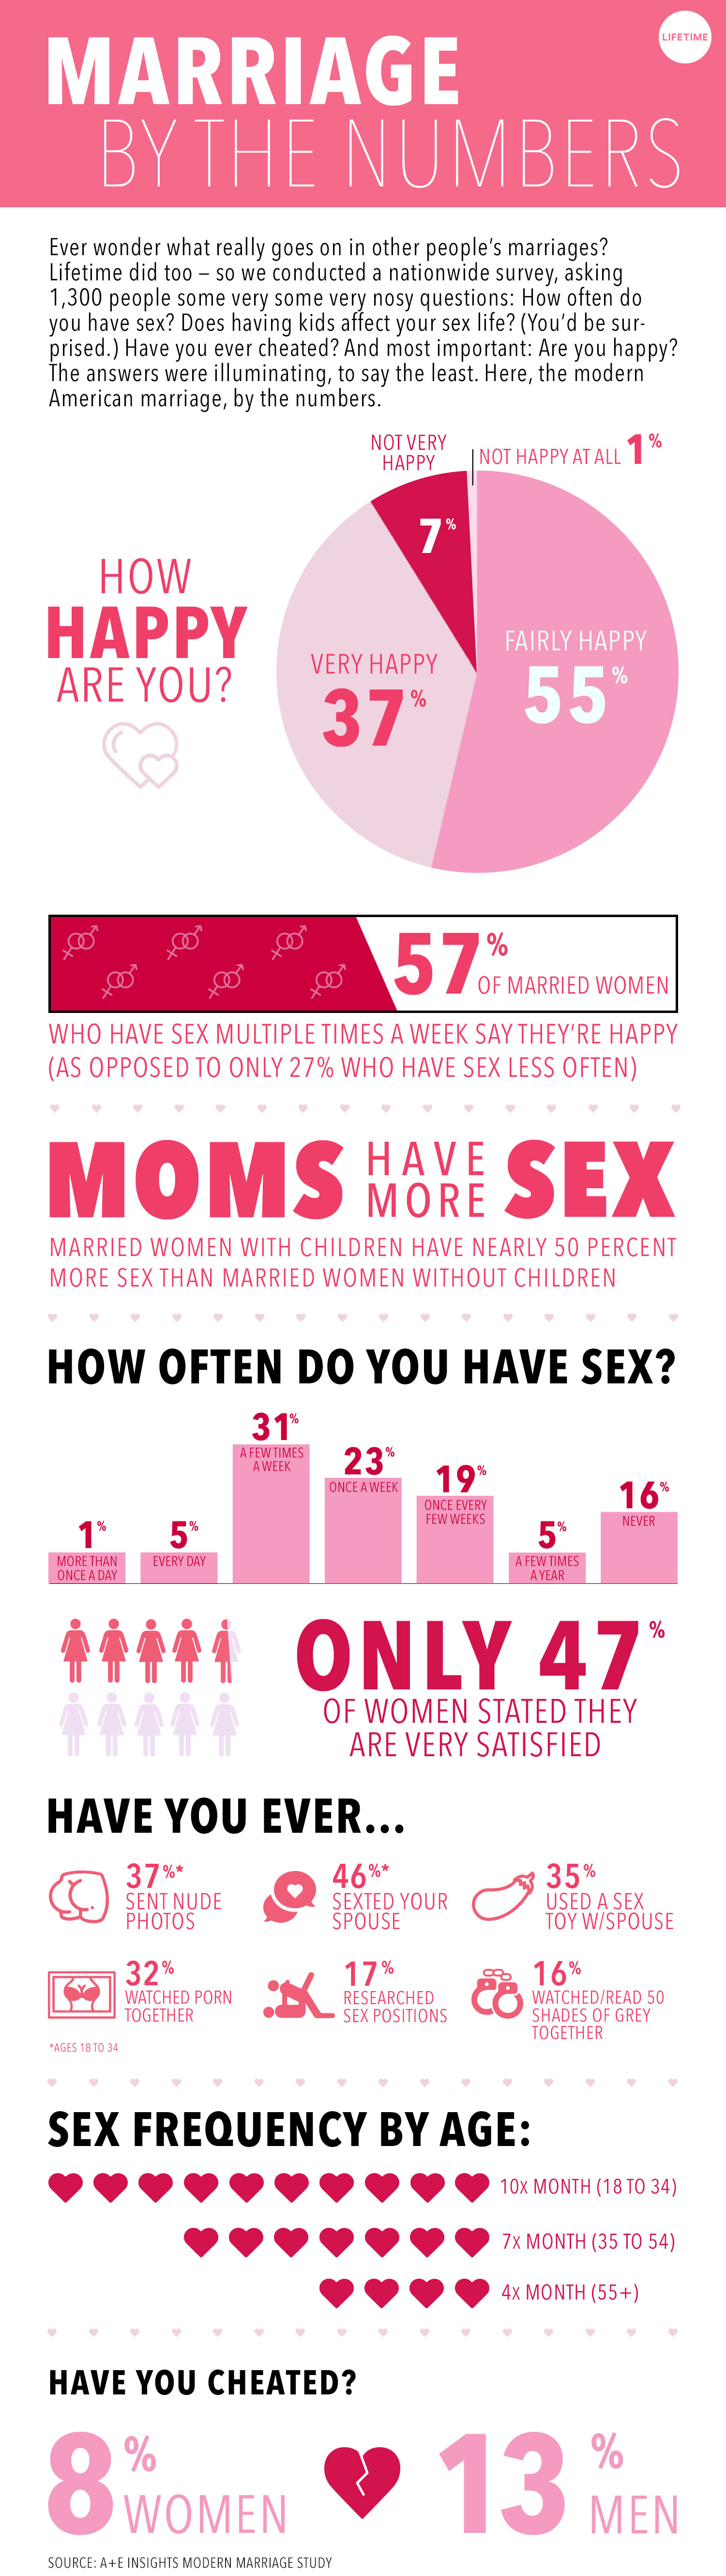 Marriage by the numbers